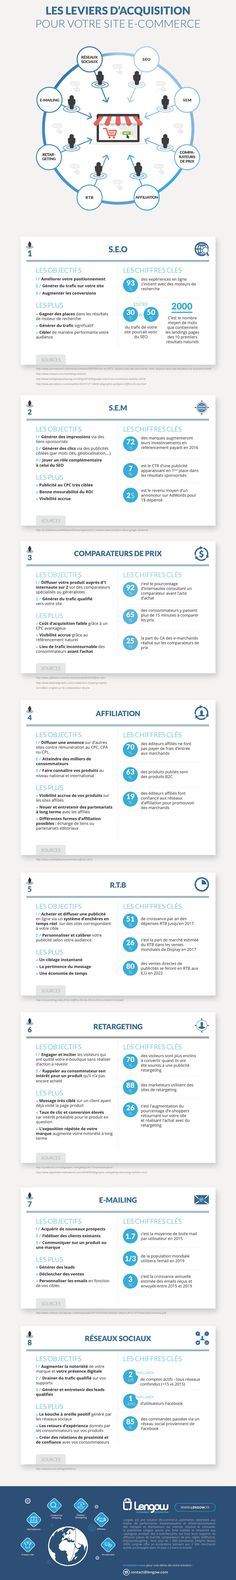 infographie-lengow